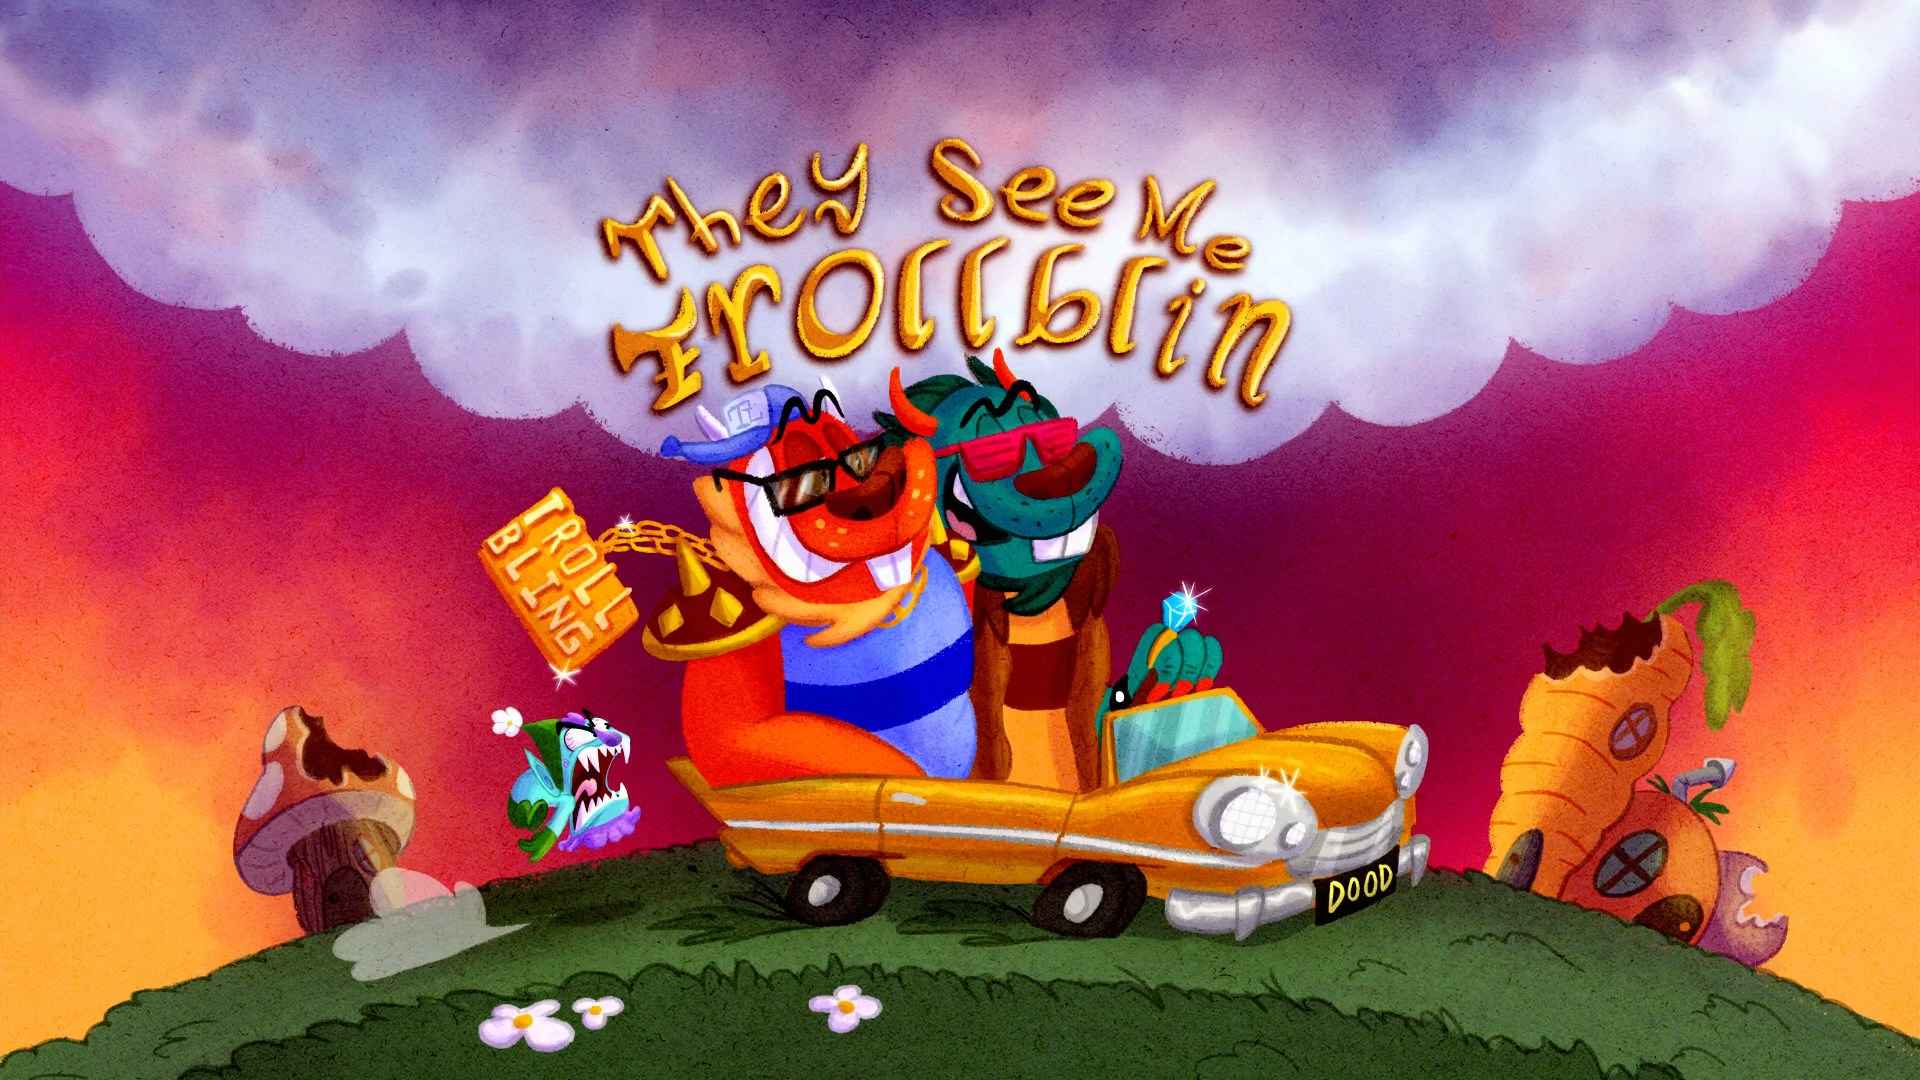 They See Me Trollblin Title Card